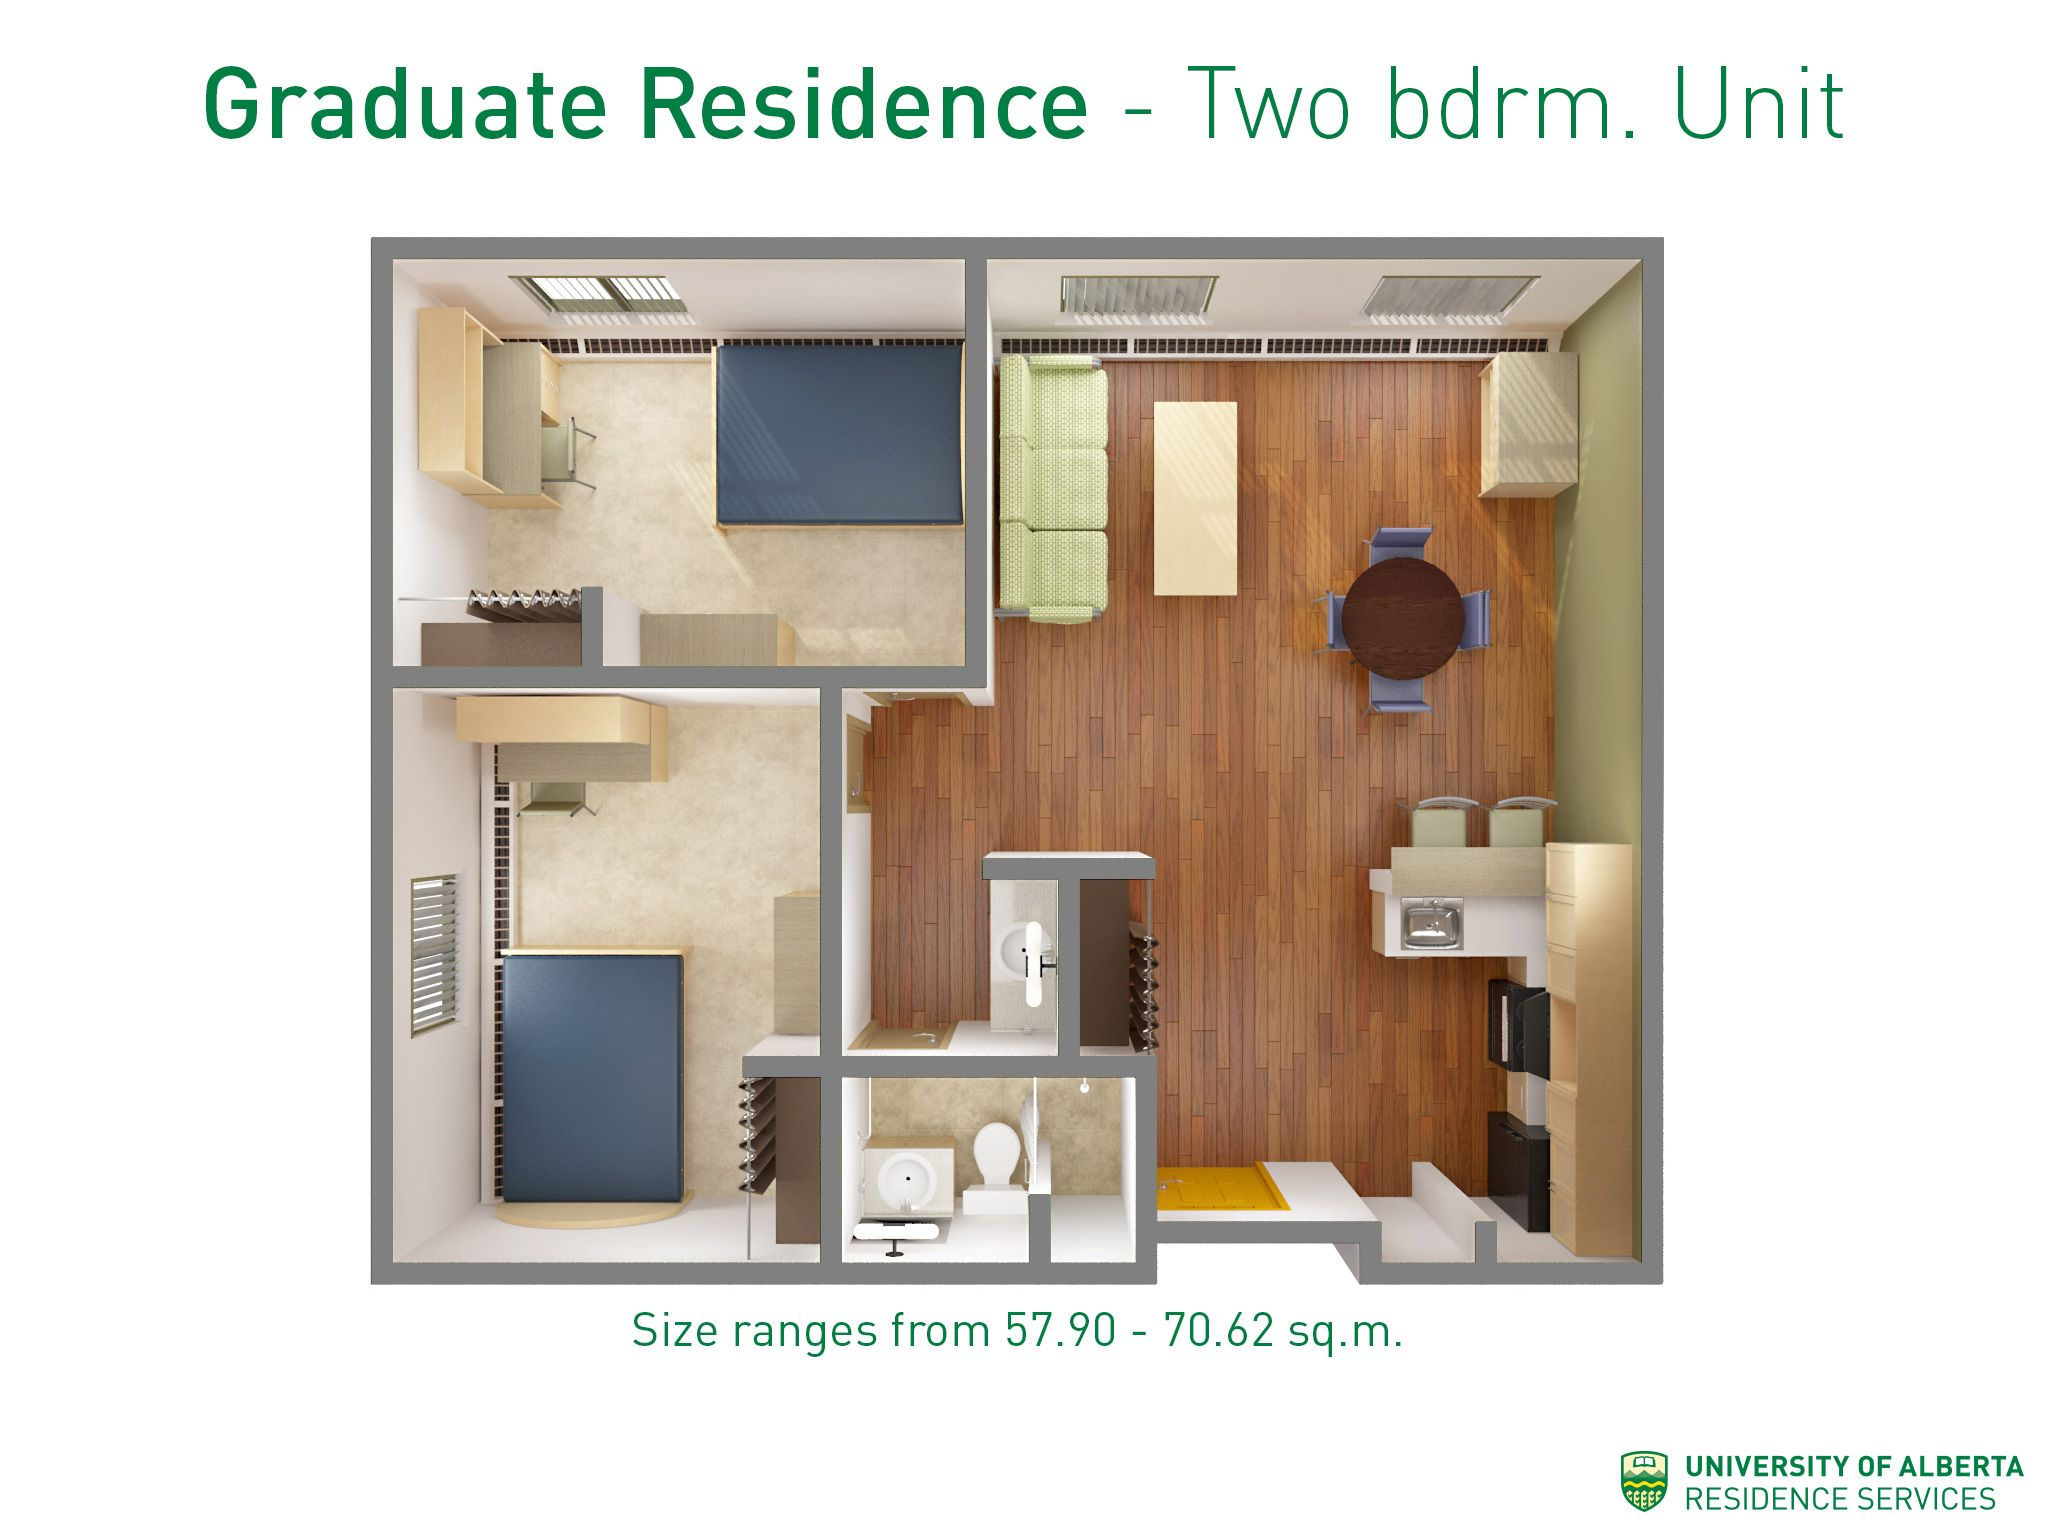 Layout Of A 2 Bedroom Unit In Graduate Residence At Ualberta Apartments For Rent 2 Bedroom Apartment Cheap Bedroom Ideas